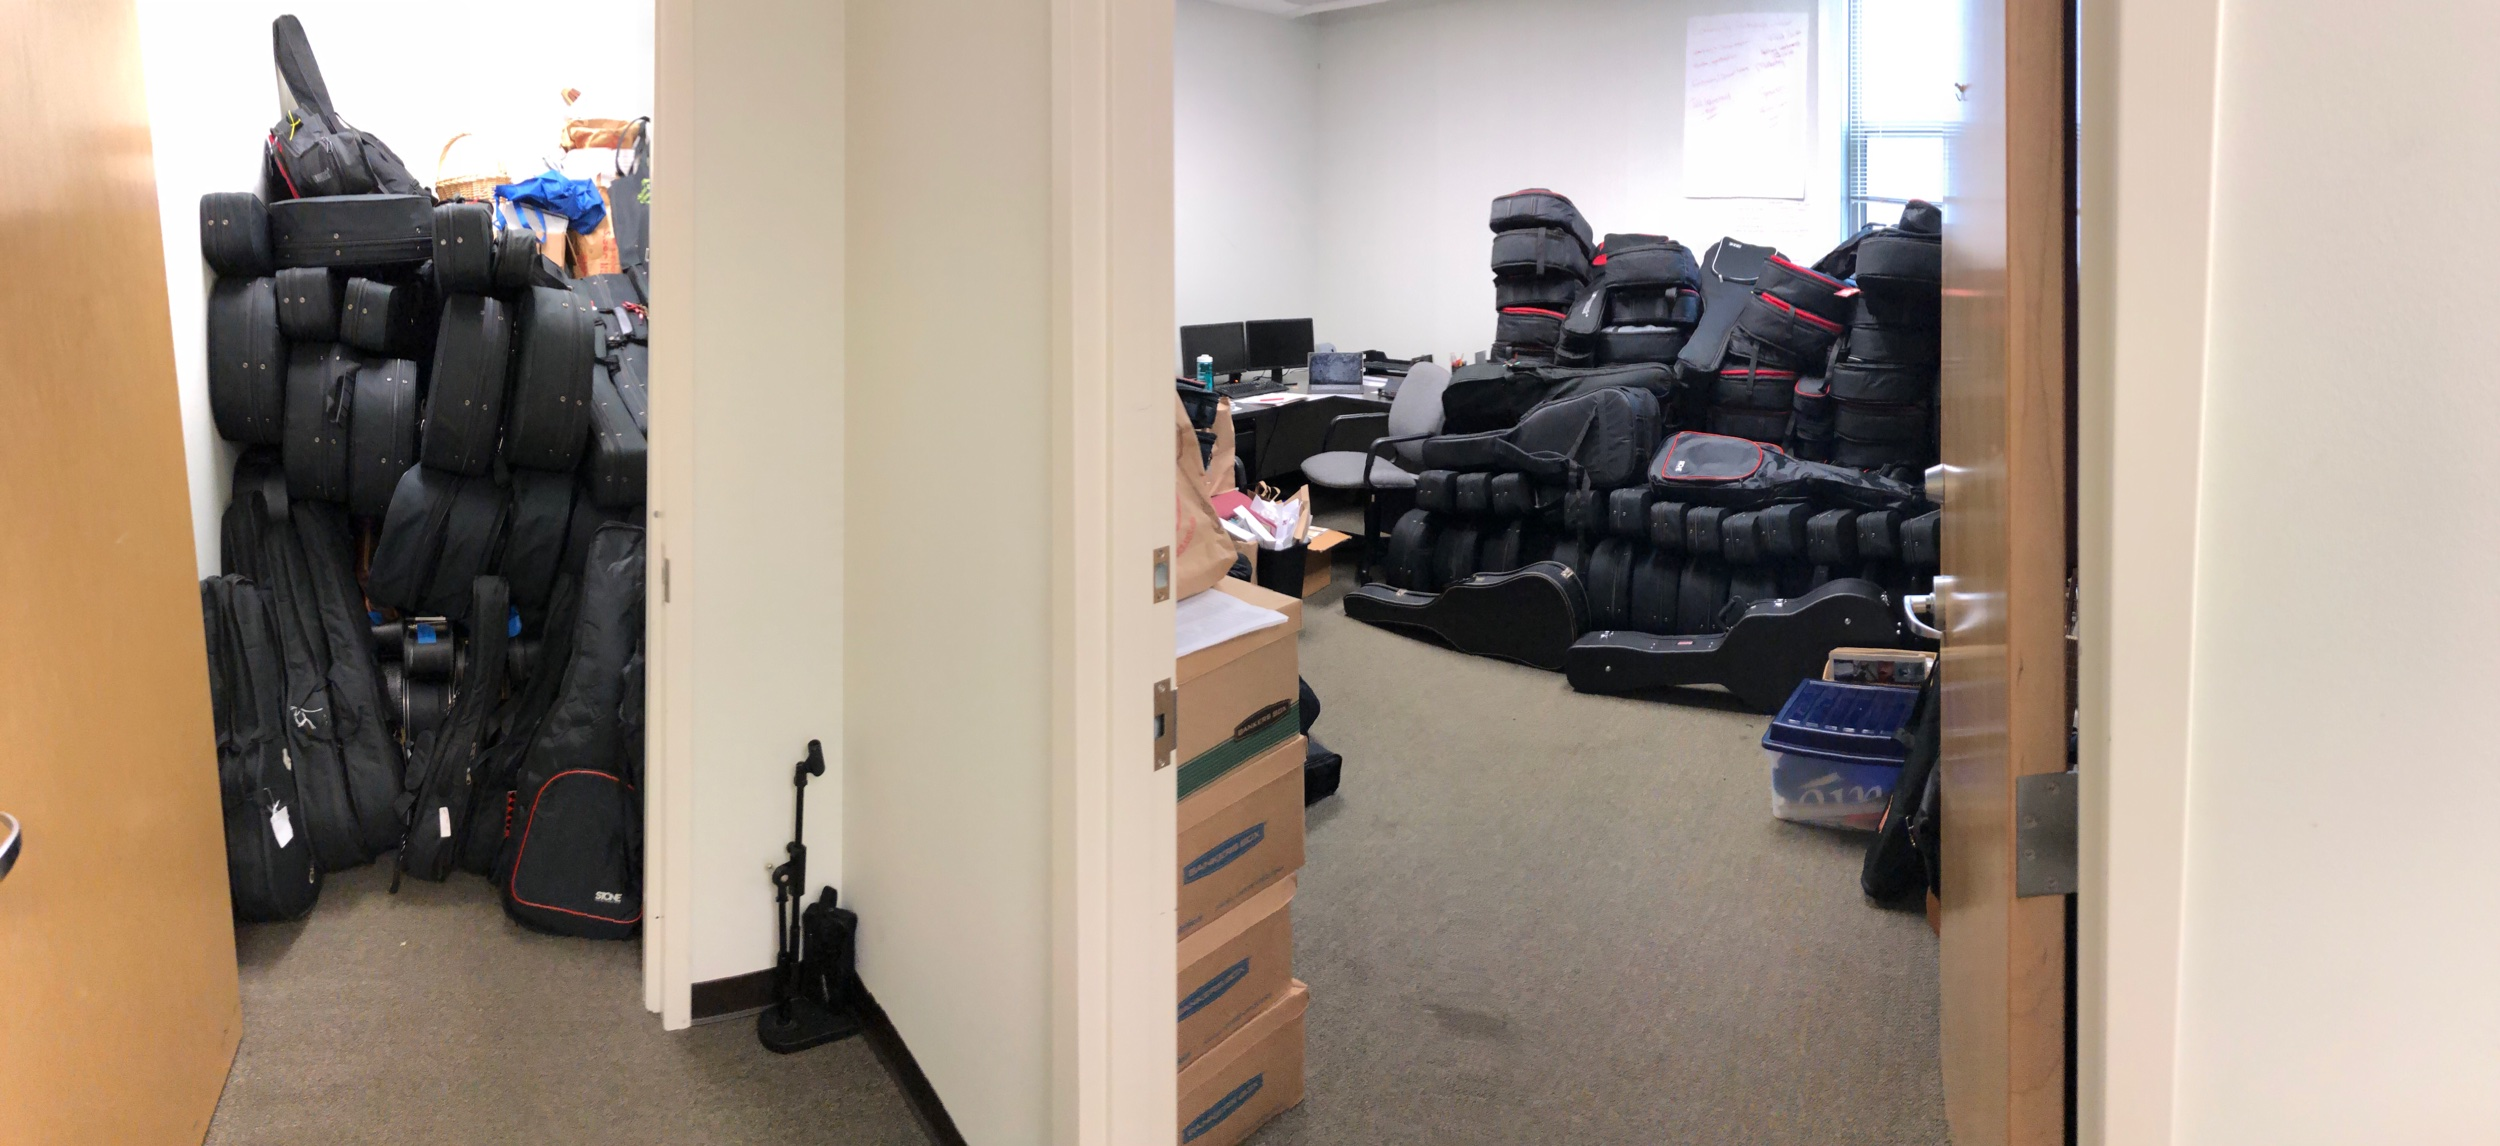 Two piles of guitars in our office at the Centene Center for the Arts